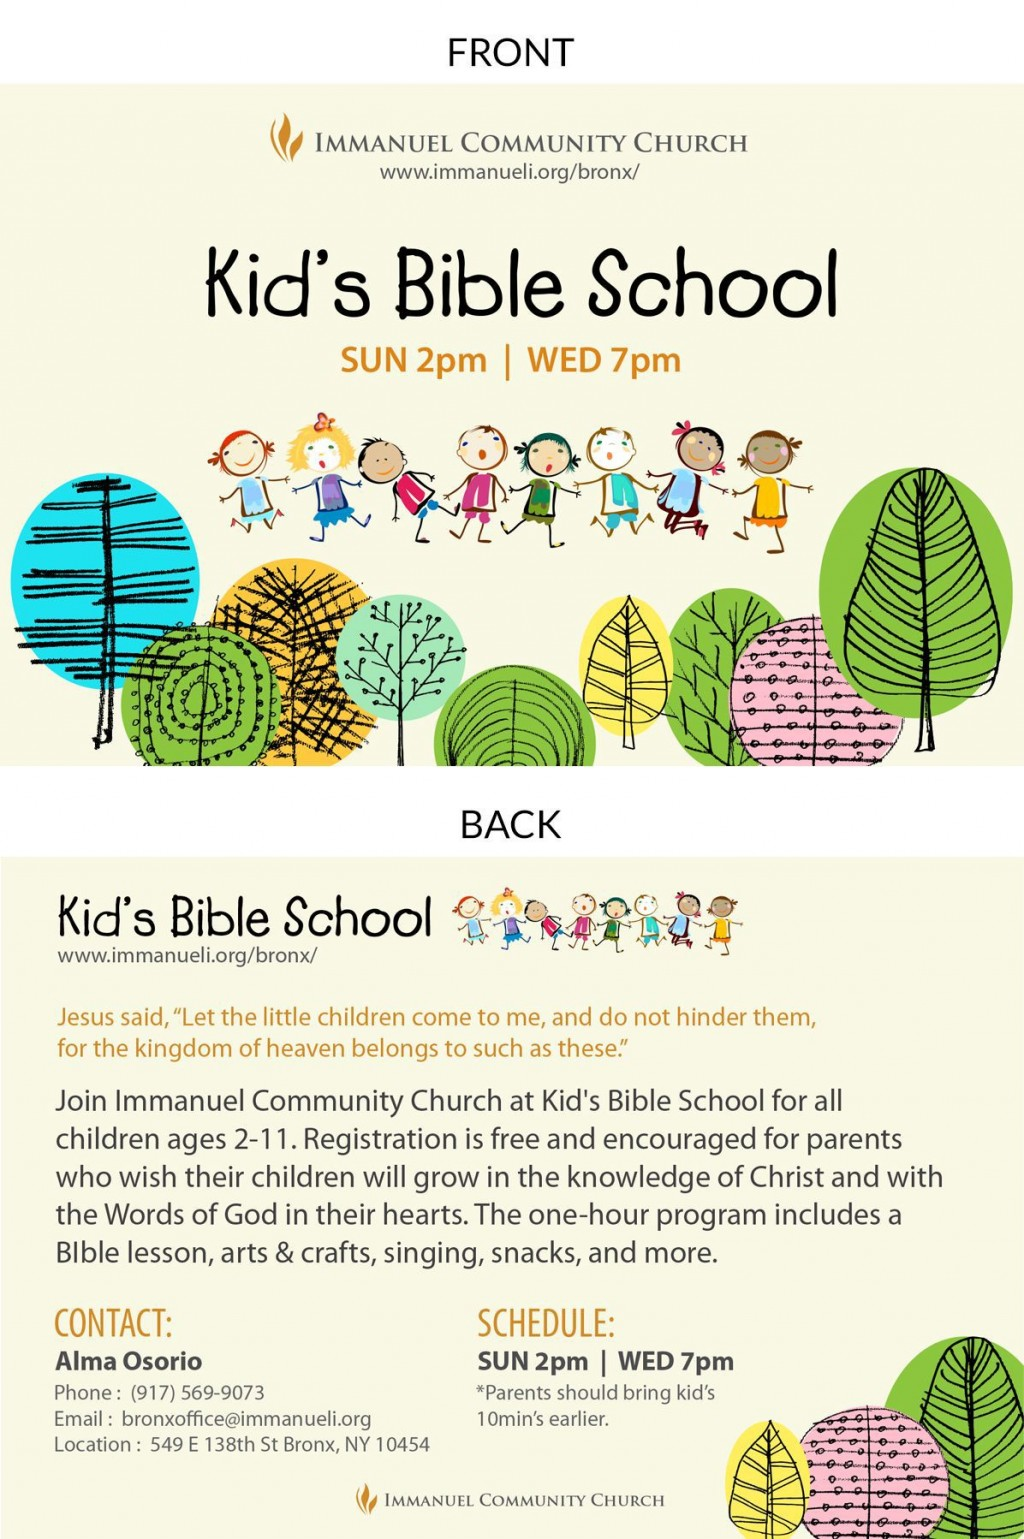 007 Awful Free Sunday School Flyer Template High Resolution  TemplatesLarge